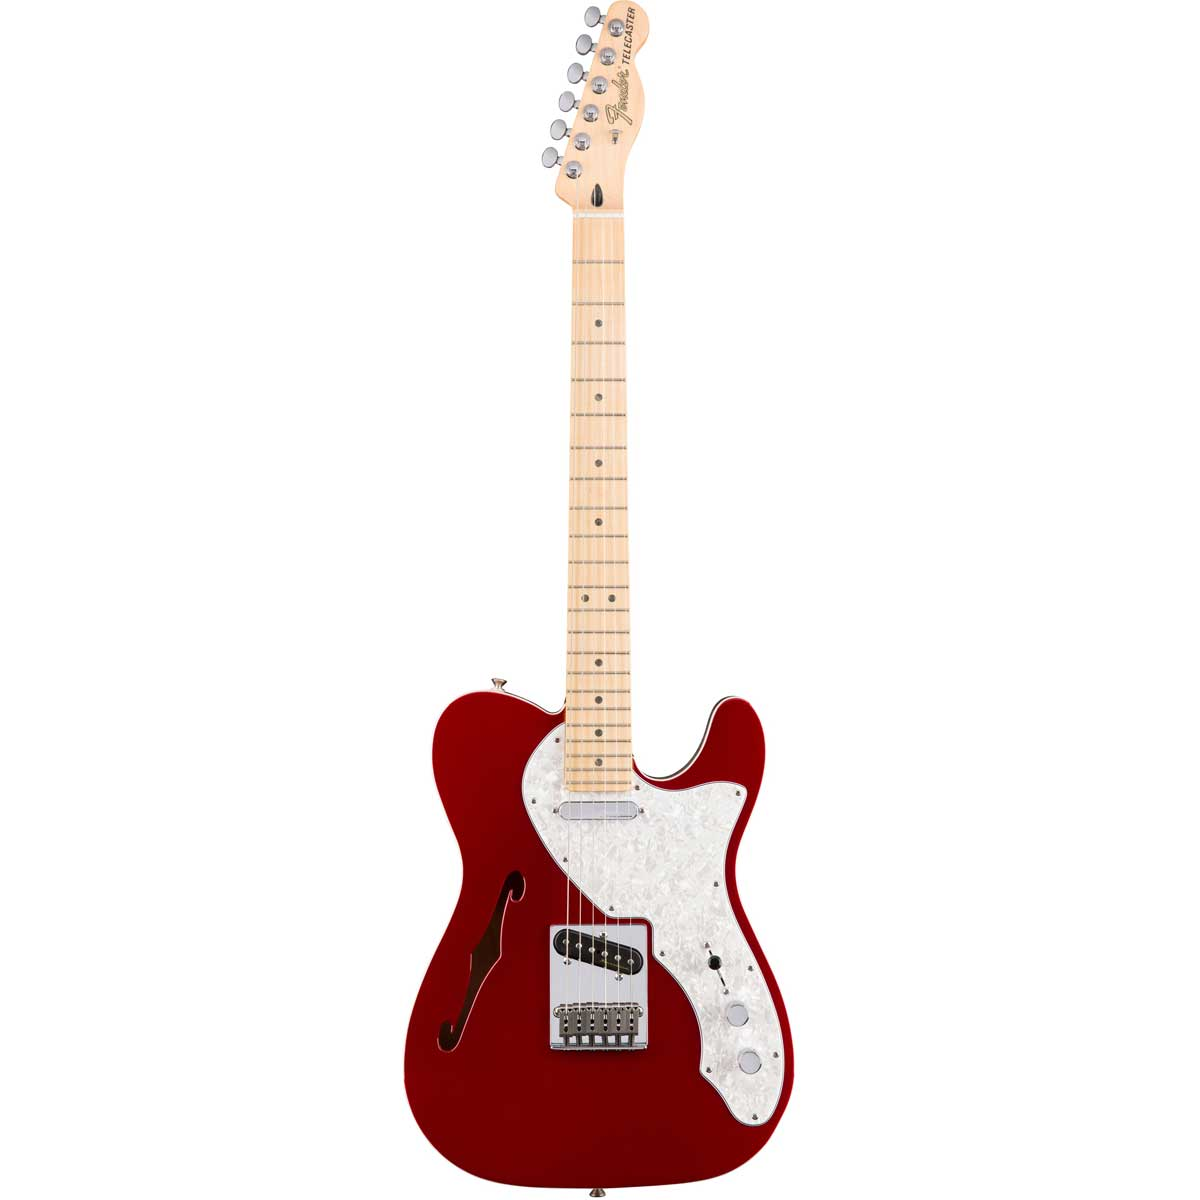 Fender Deluxe Telecaster Thinline, MN, CAR el-guitar rød